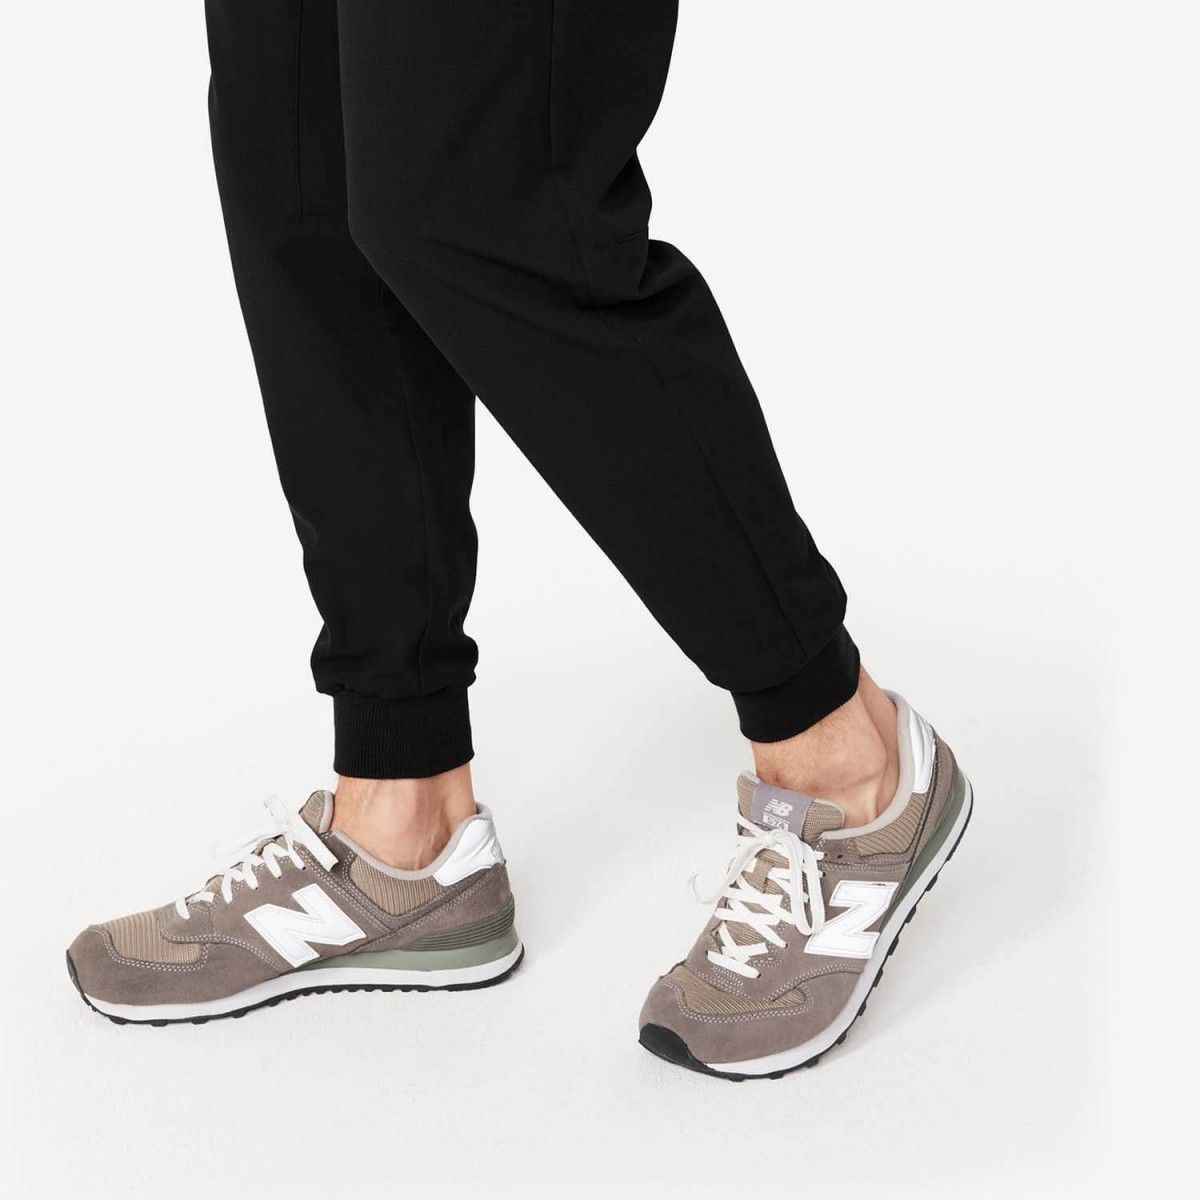 5756deecfae Mens Tansen - Jogger Scrub Pant in 2019 | Products | Scrub pants ...